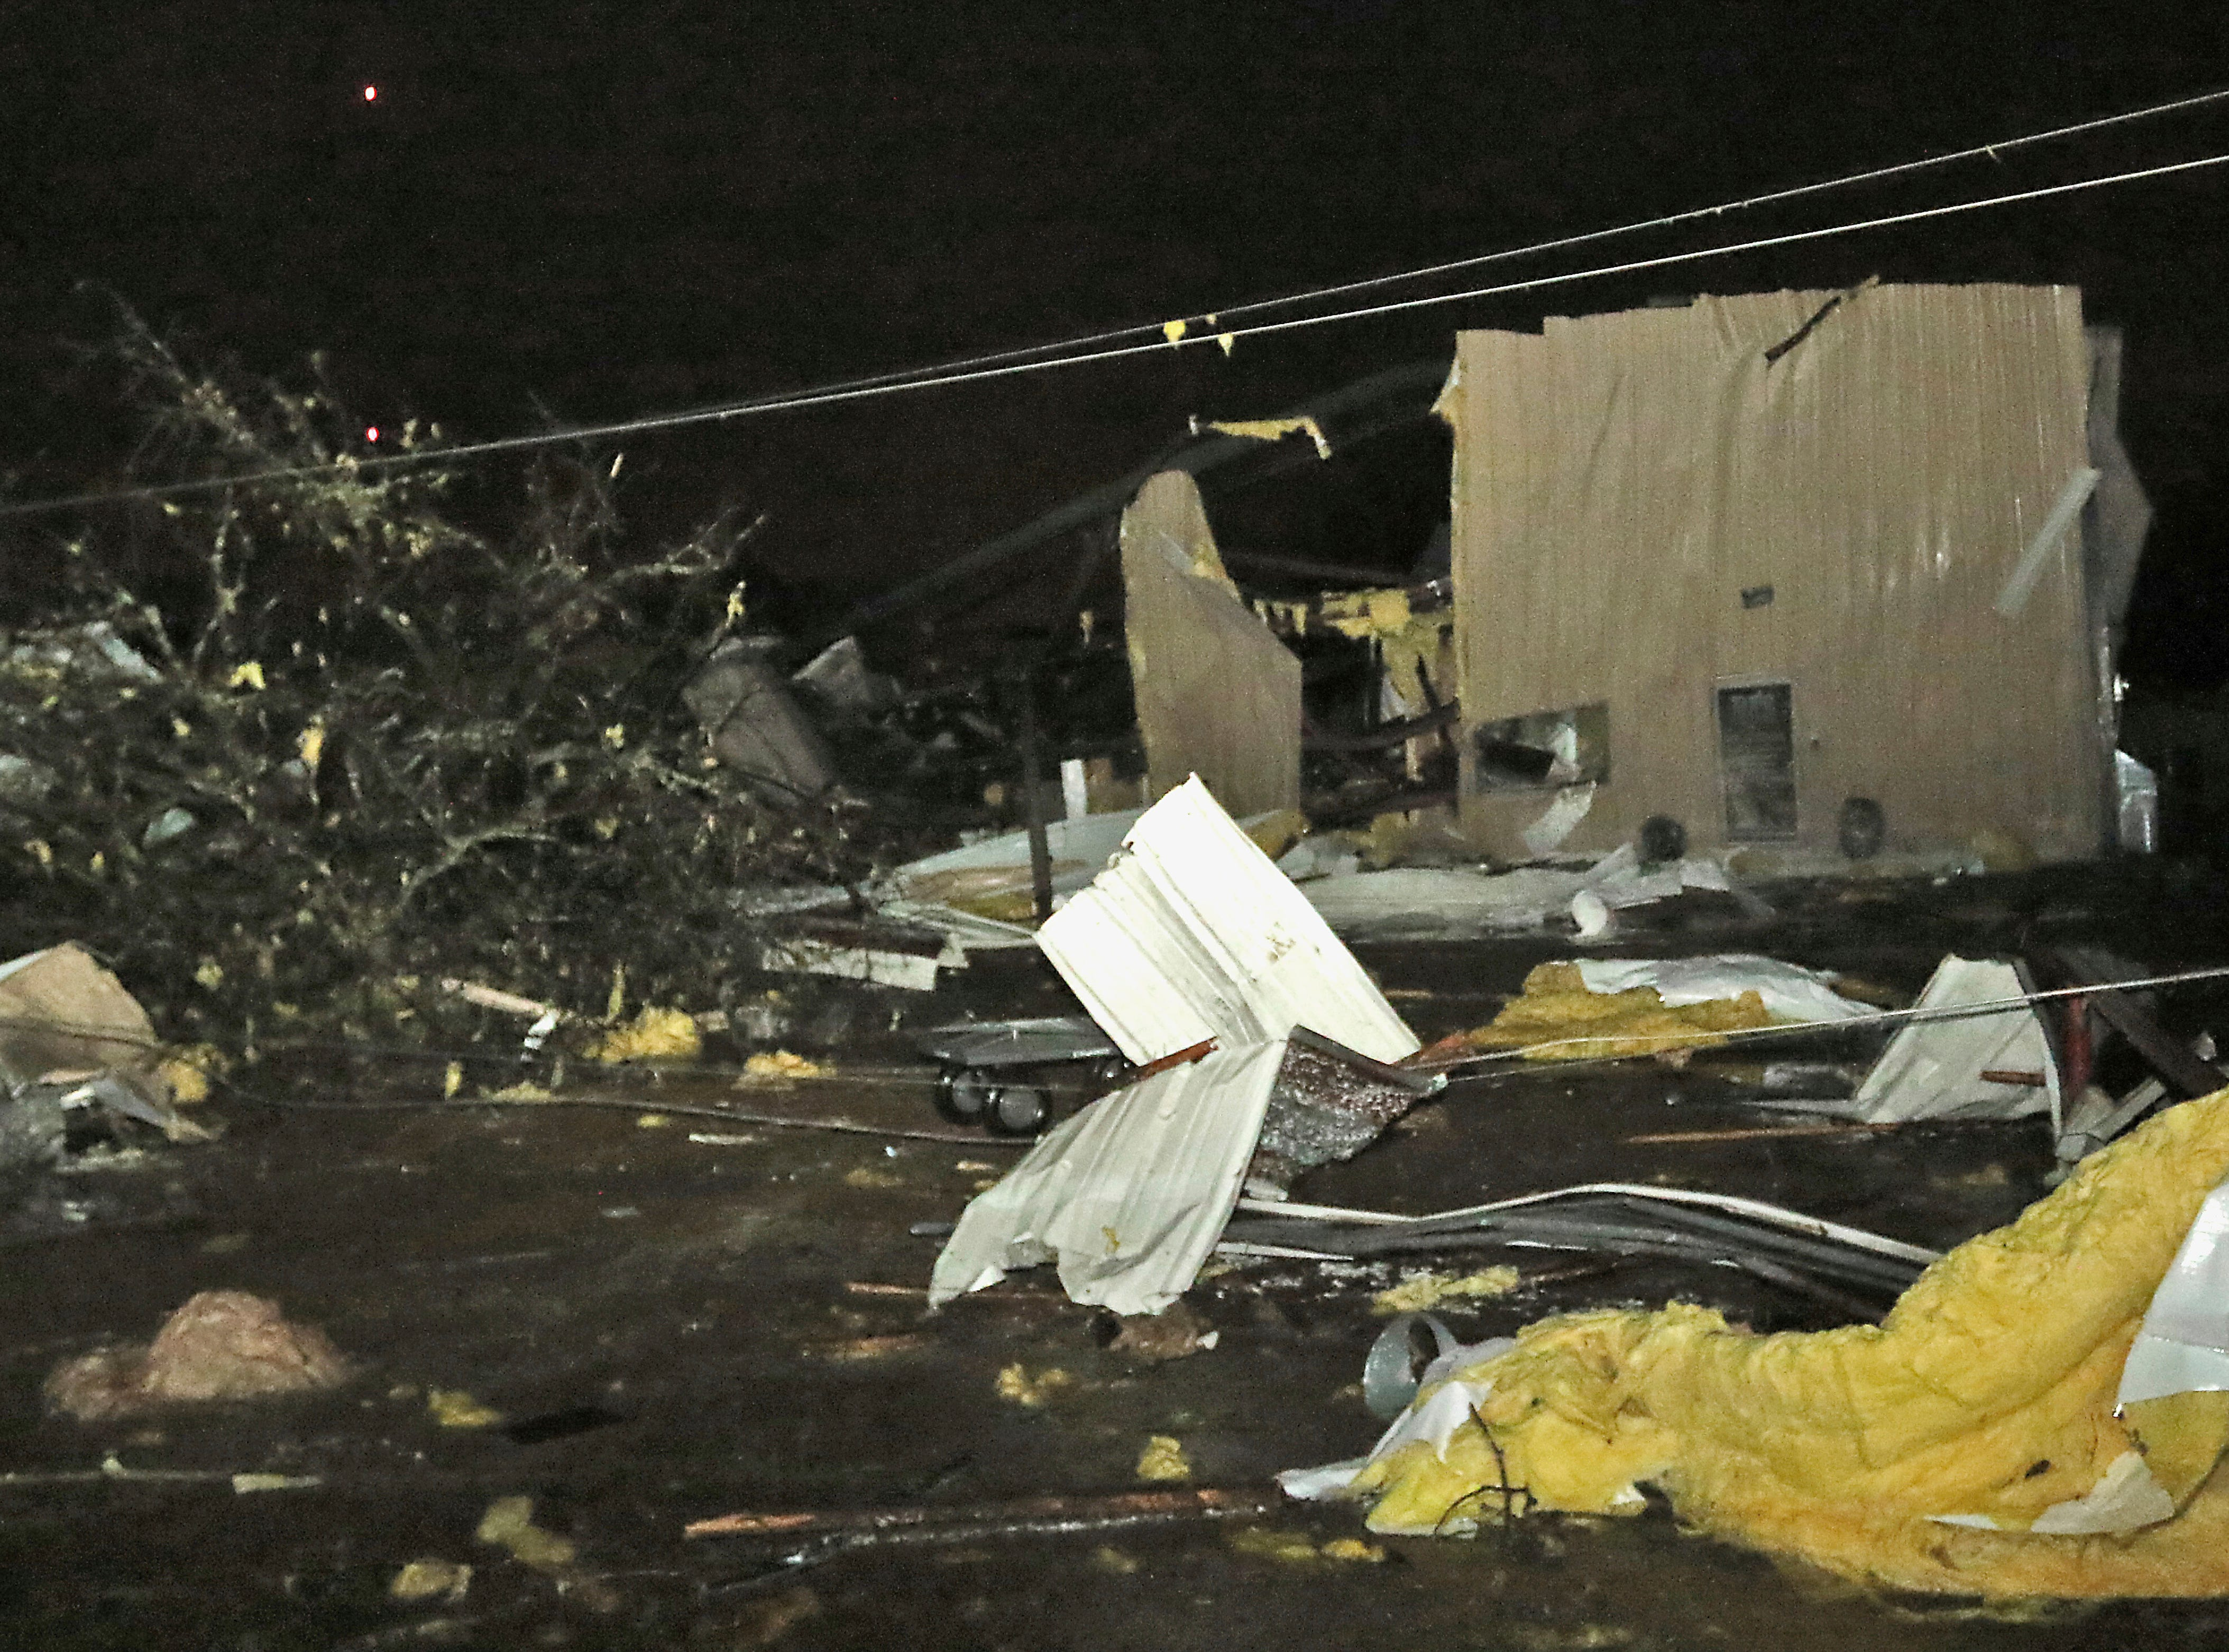 Downed power lines, trees and building debris from businesses including B.J.'s Dog Grooming liter Conway Drive in Columbus, Miss., after a tornado struck the area on Saturday, Feb. 23, 2019. (AP Photo/Jim Lytle)